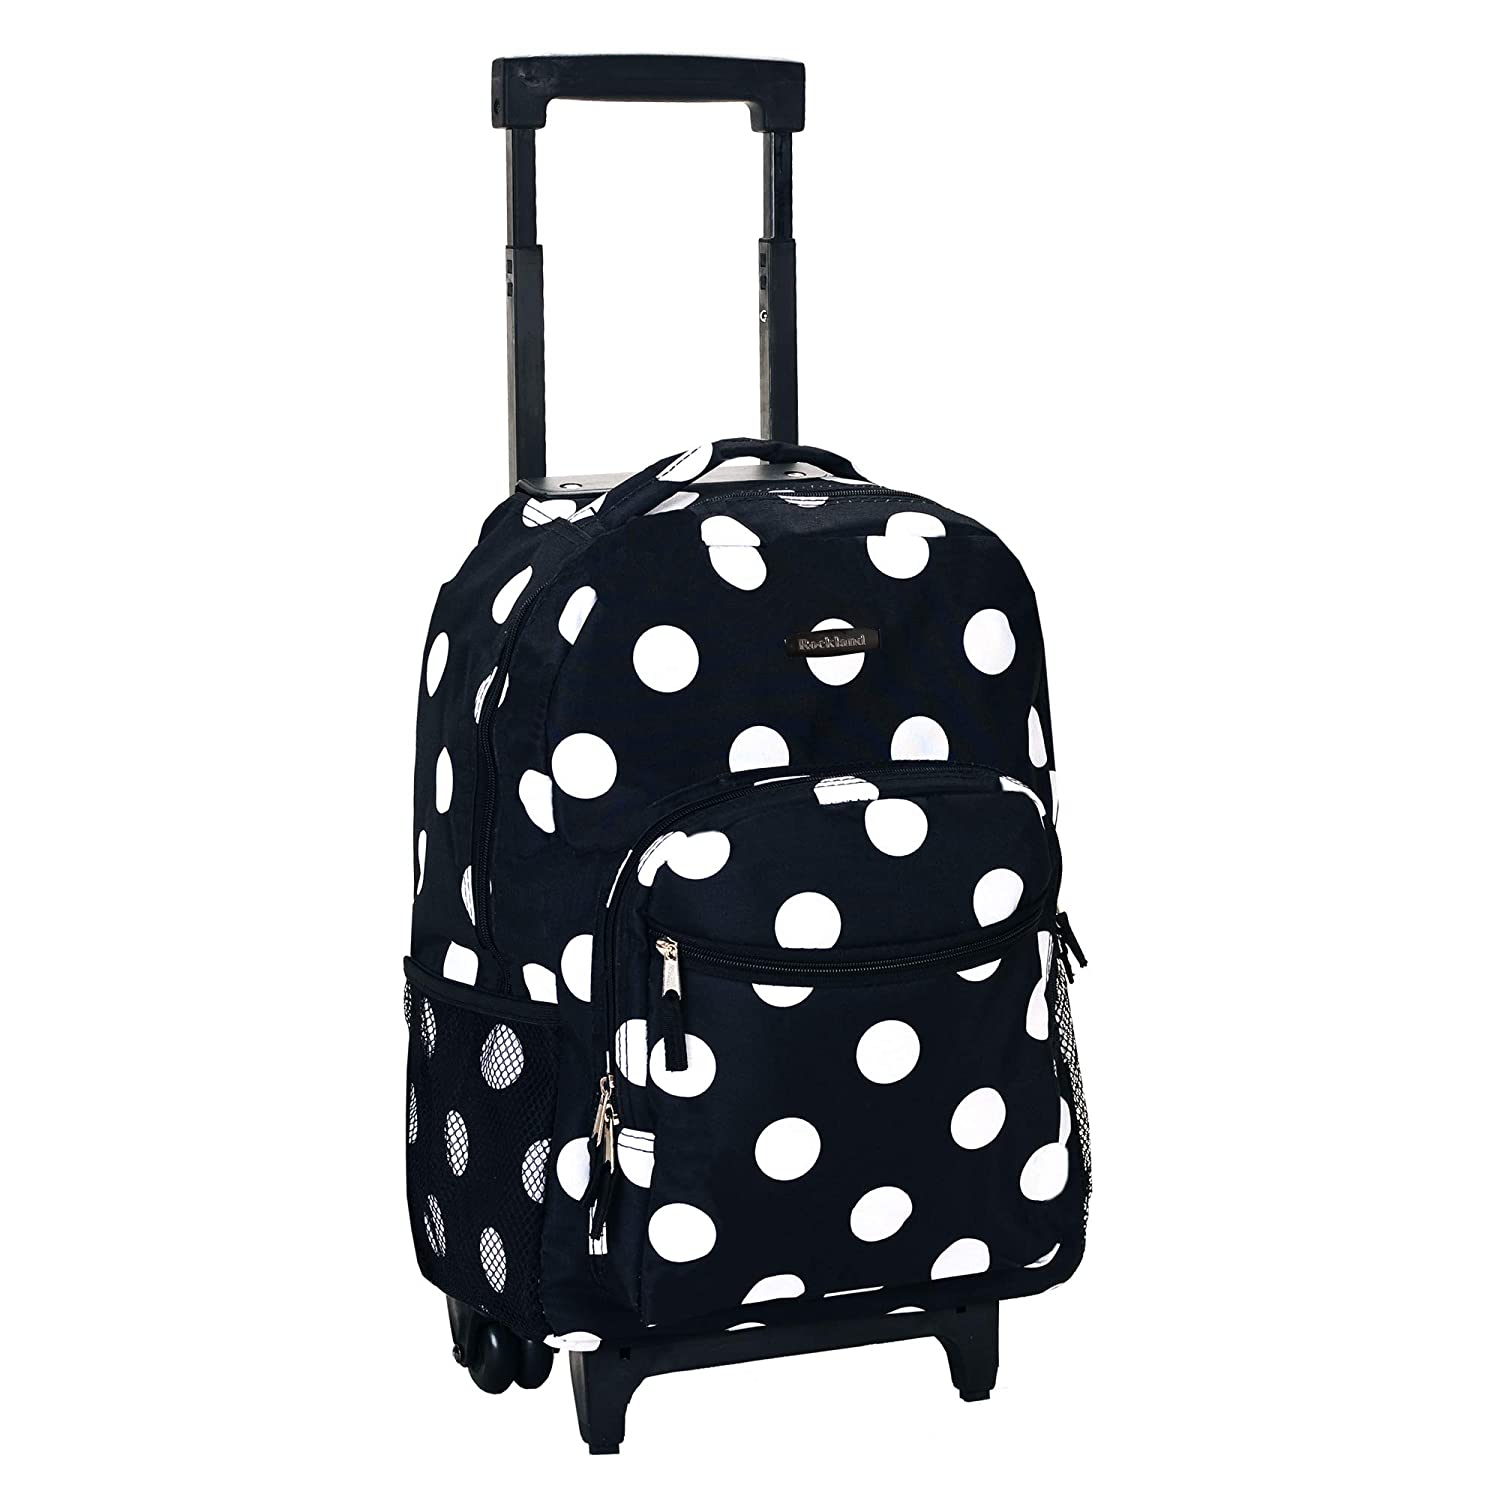 Rockland Luggage 17 Inch Rolling Backpack, Black Dot, Medium